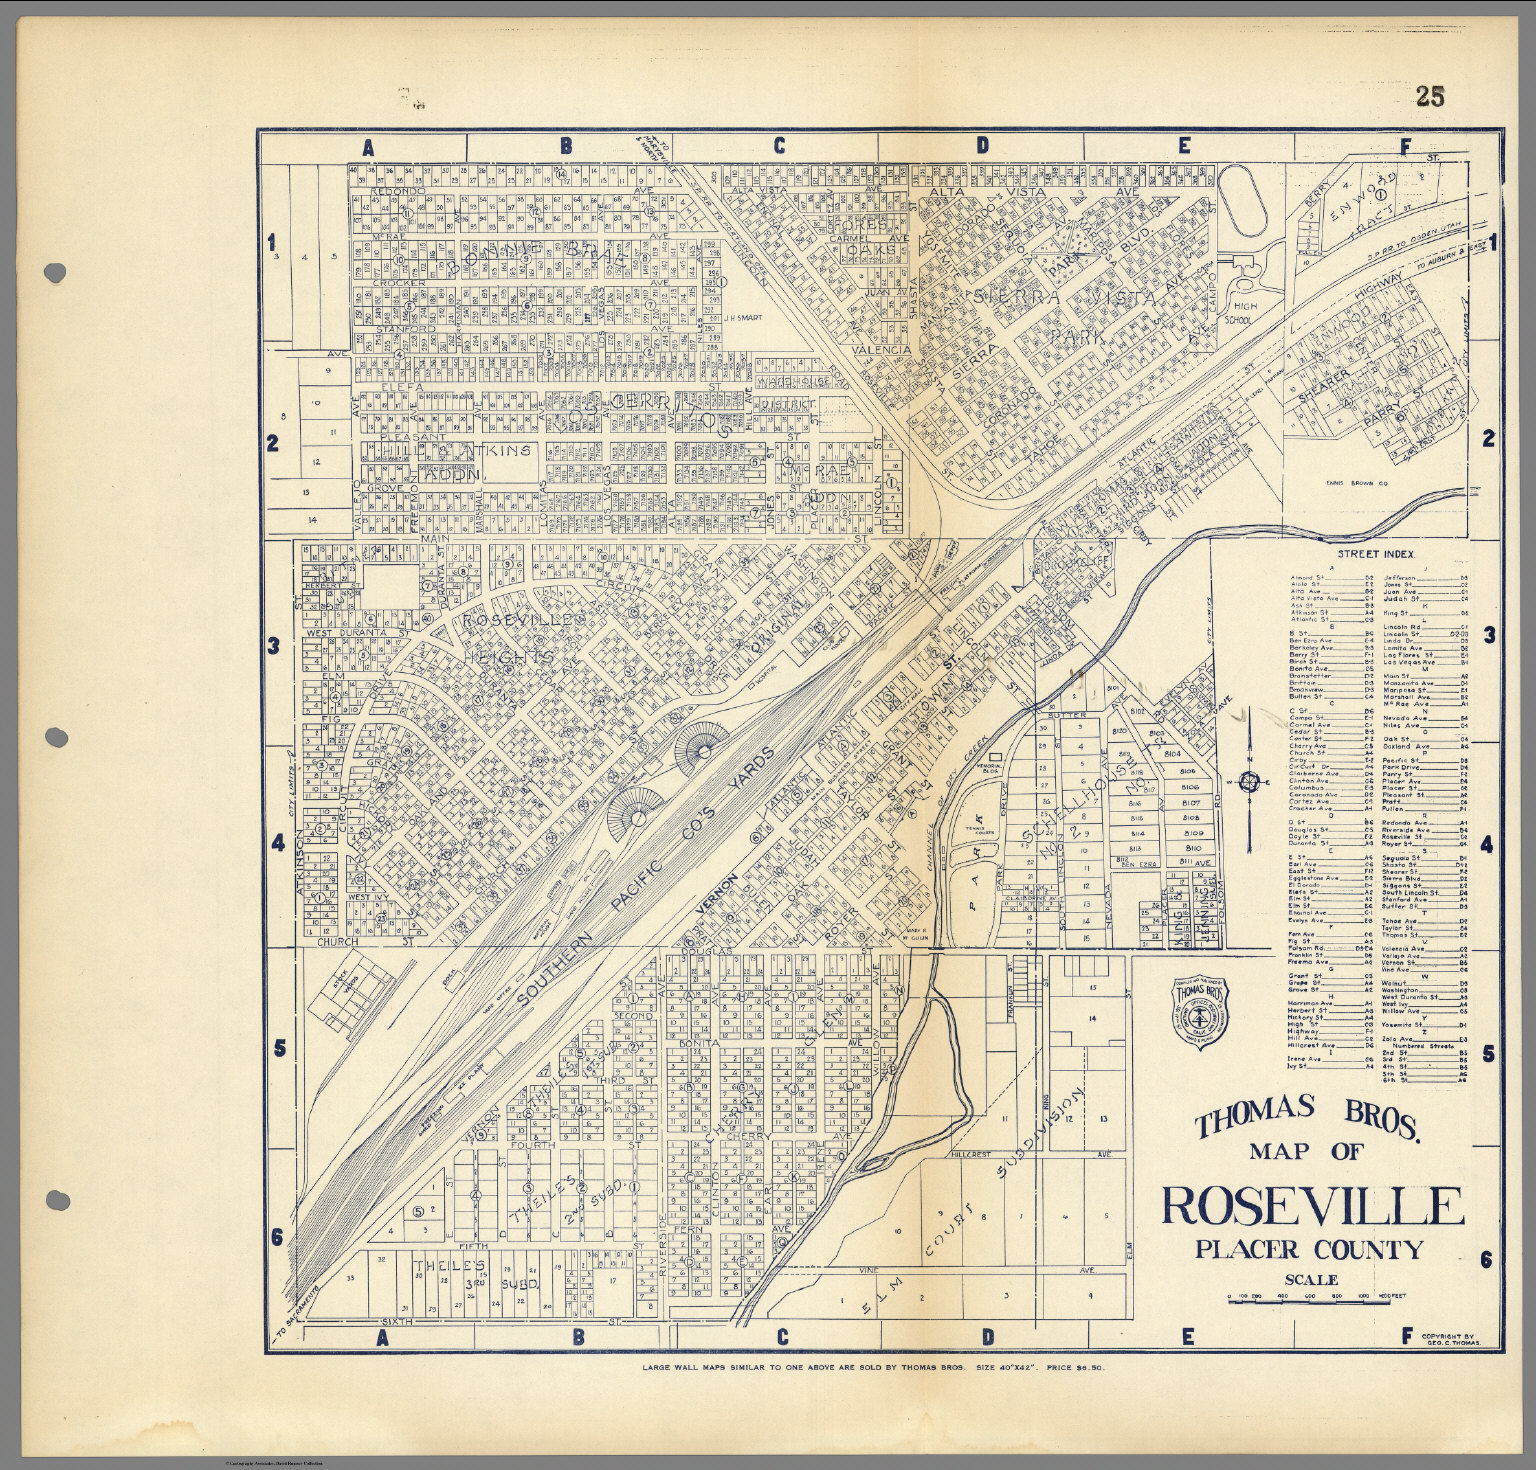 Thomas Bros. Map of Roseville, Placer County, California ...